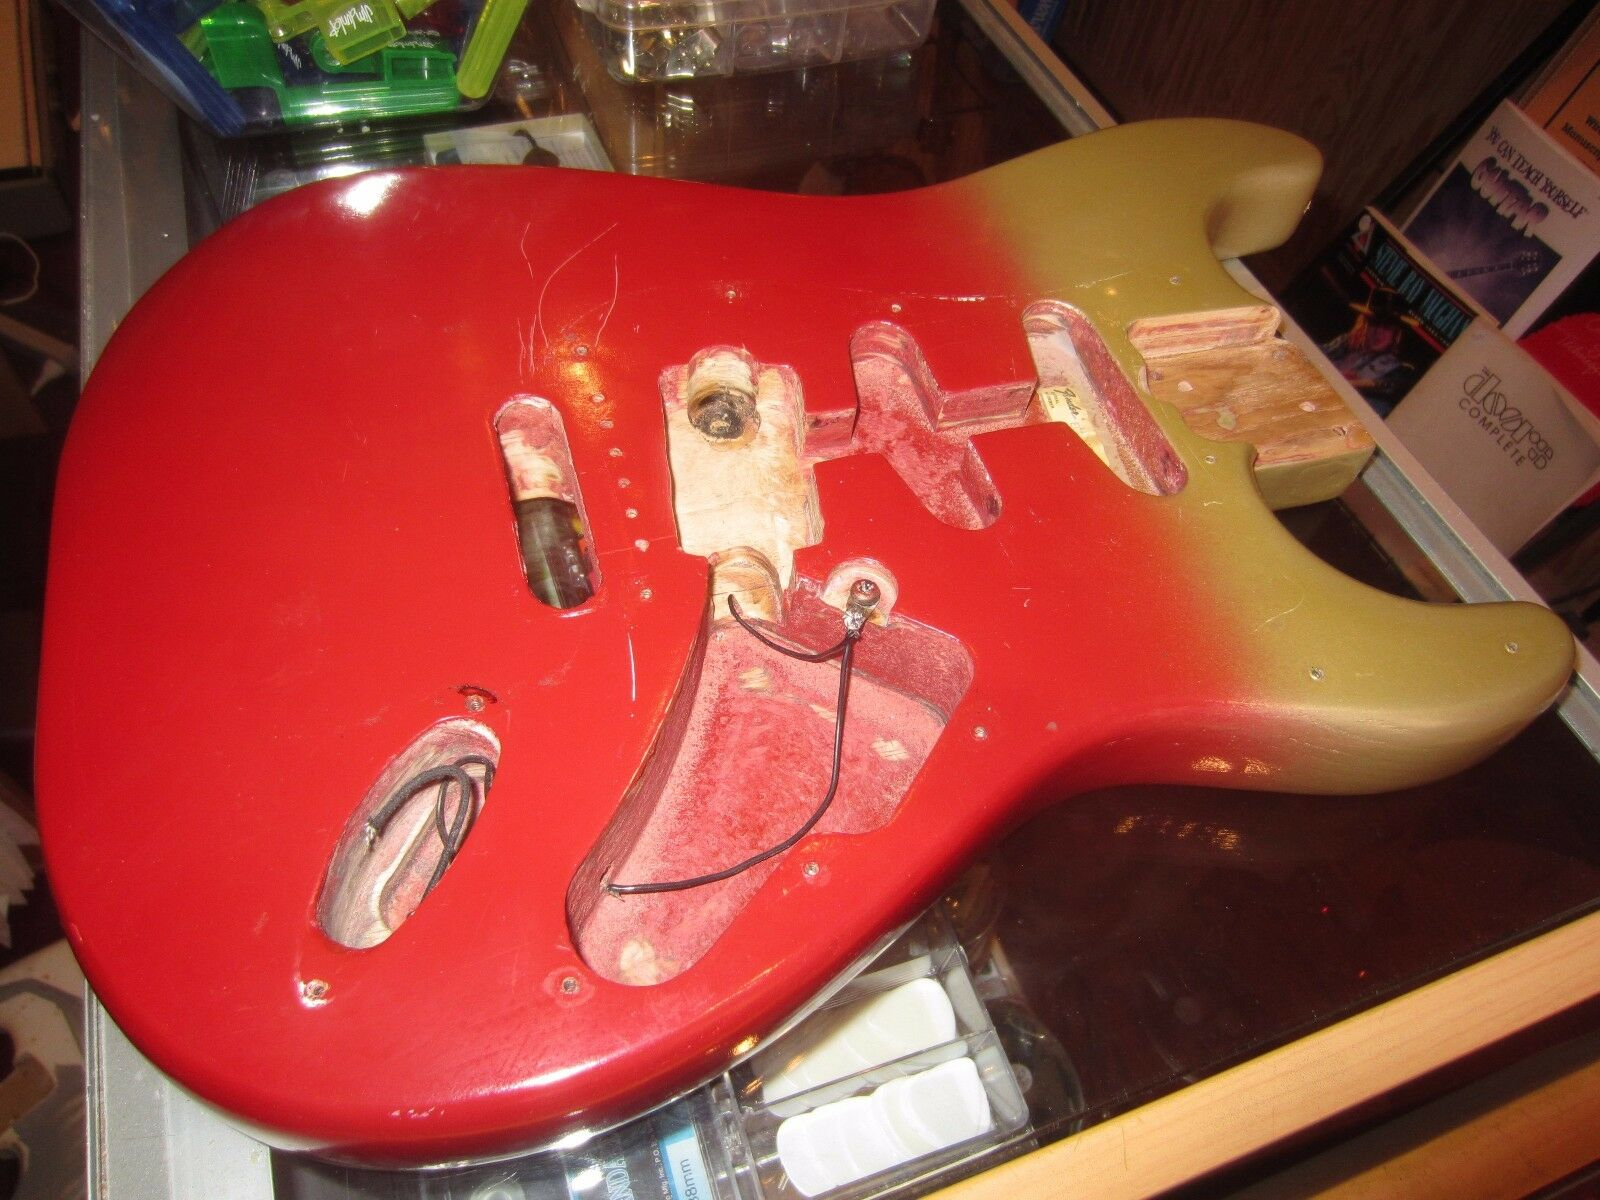 Vintage Circa 1980's Fender Stratrocaster Electric Guitar Body rot and Gold Nice